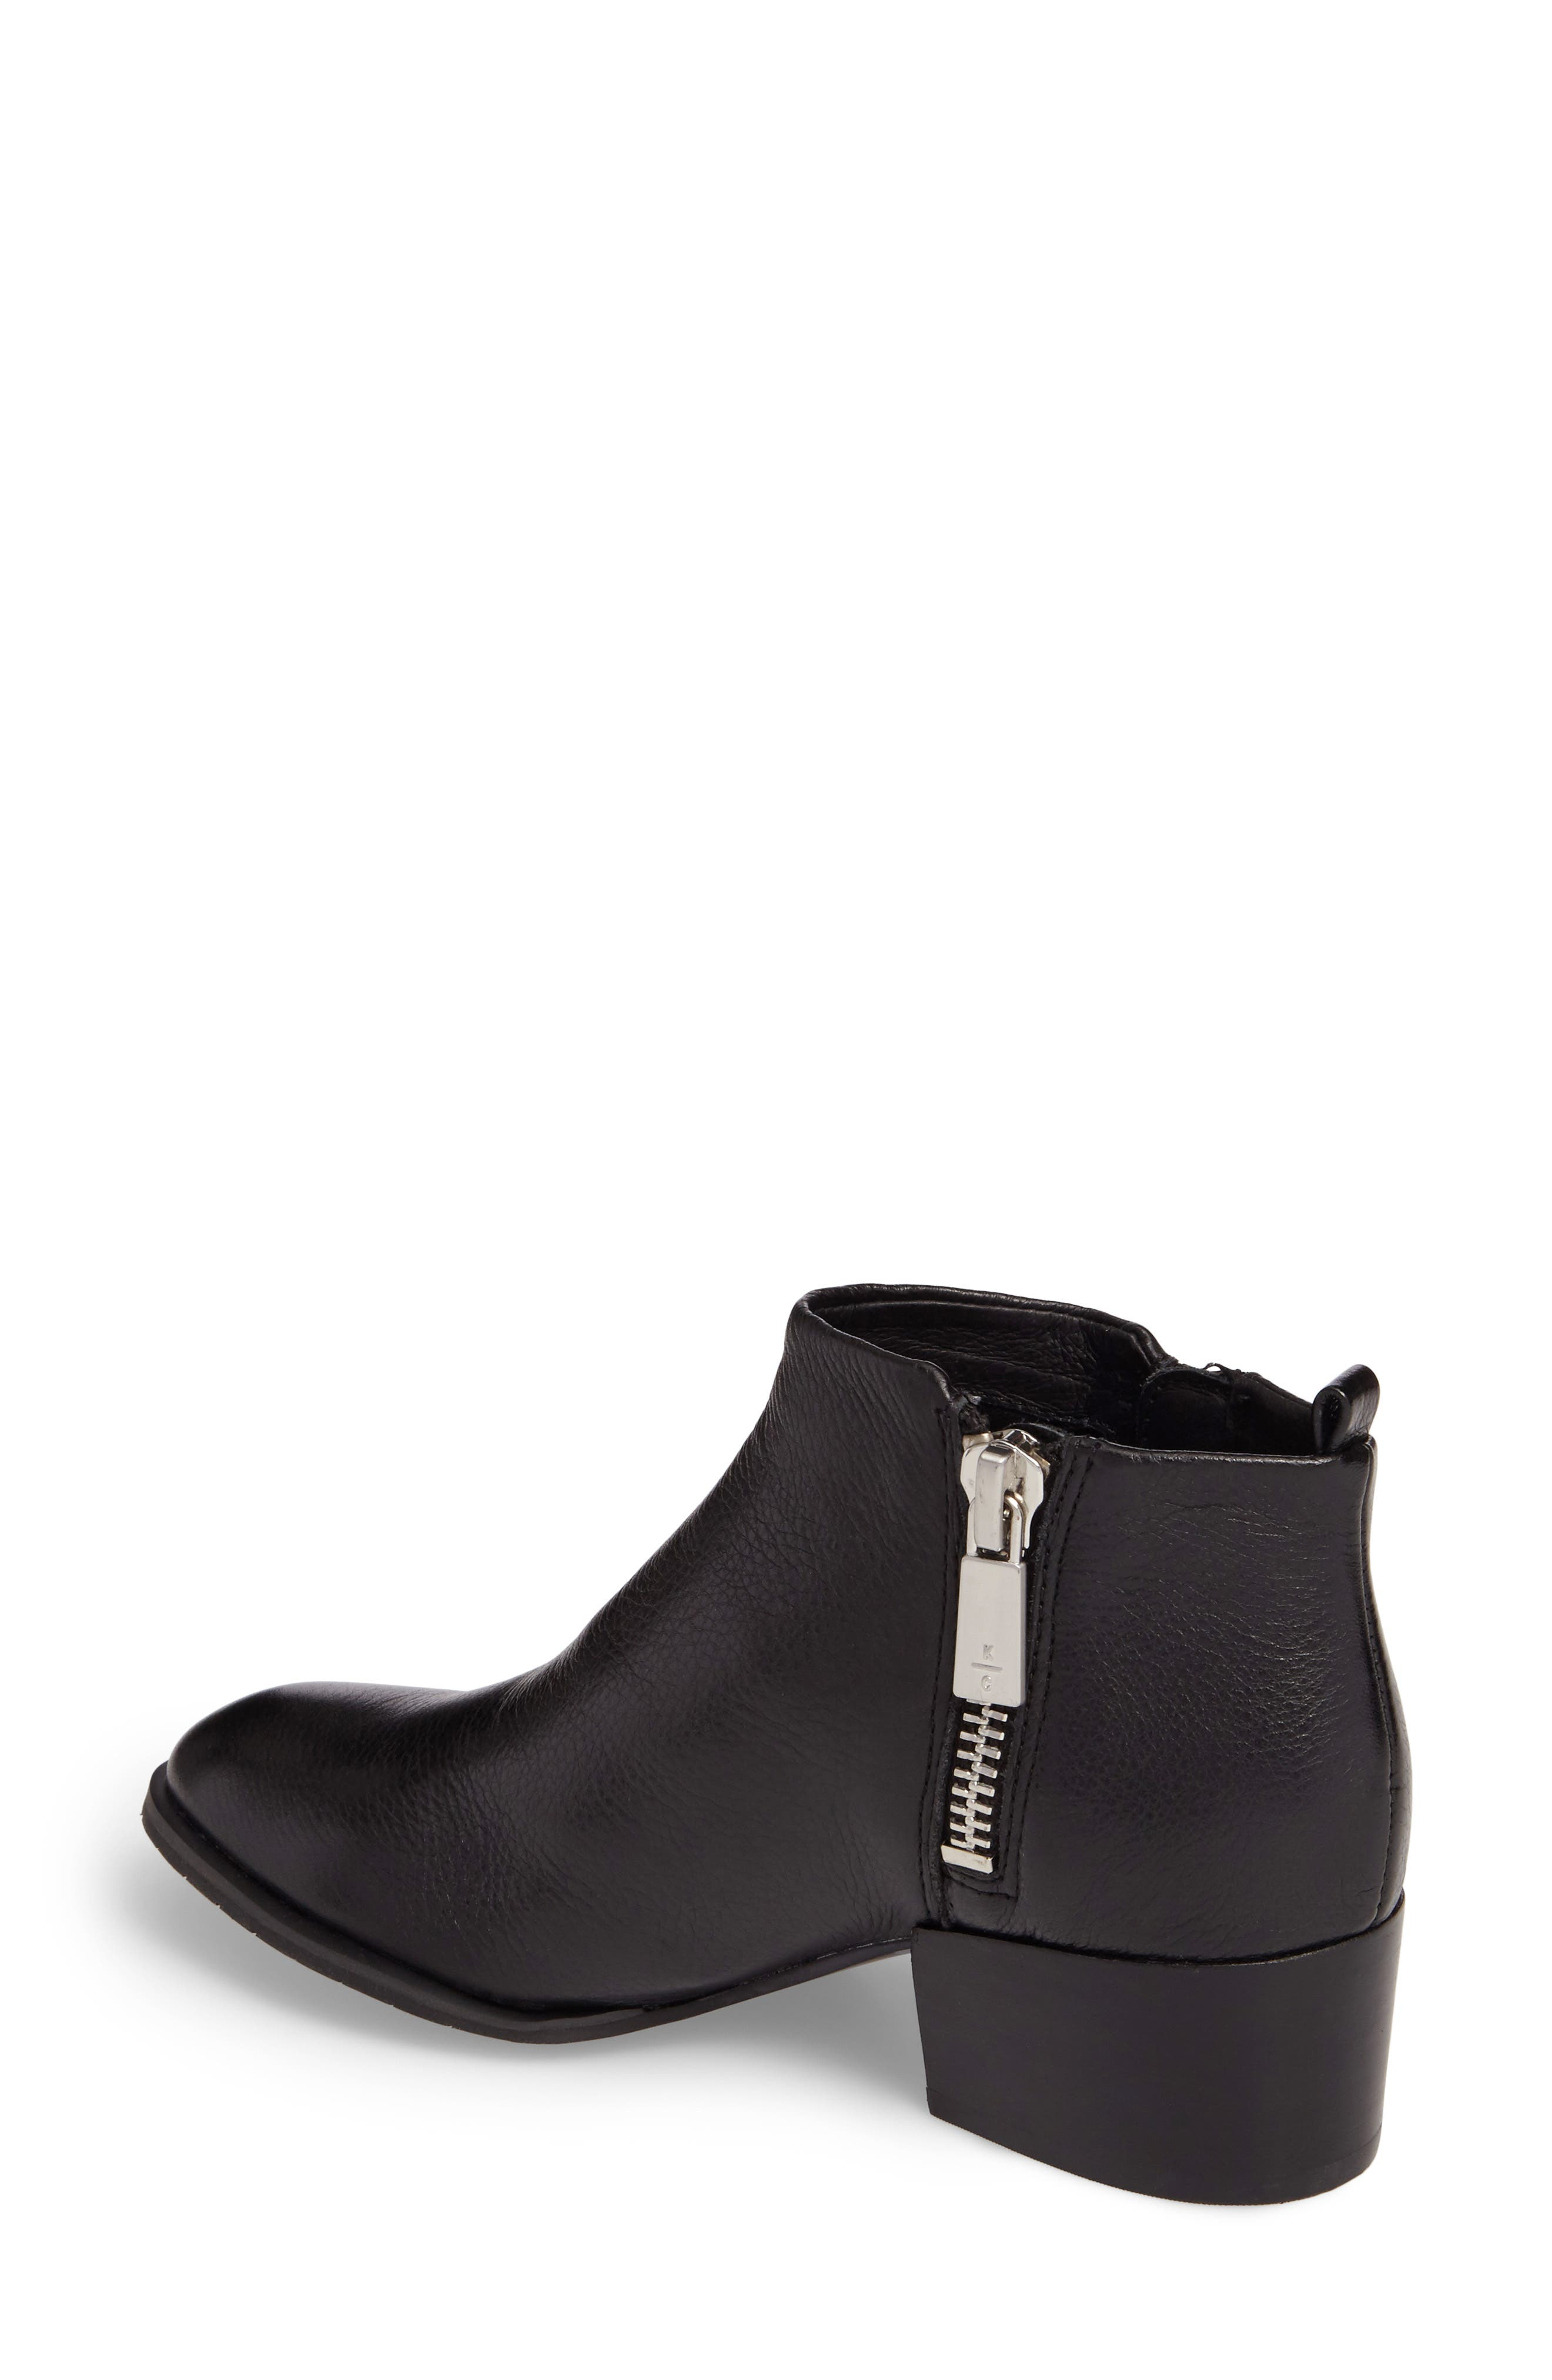 KENNETH COLE NEW YORK, Addy Bootie, Alternate thumbnail 2, color, 001